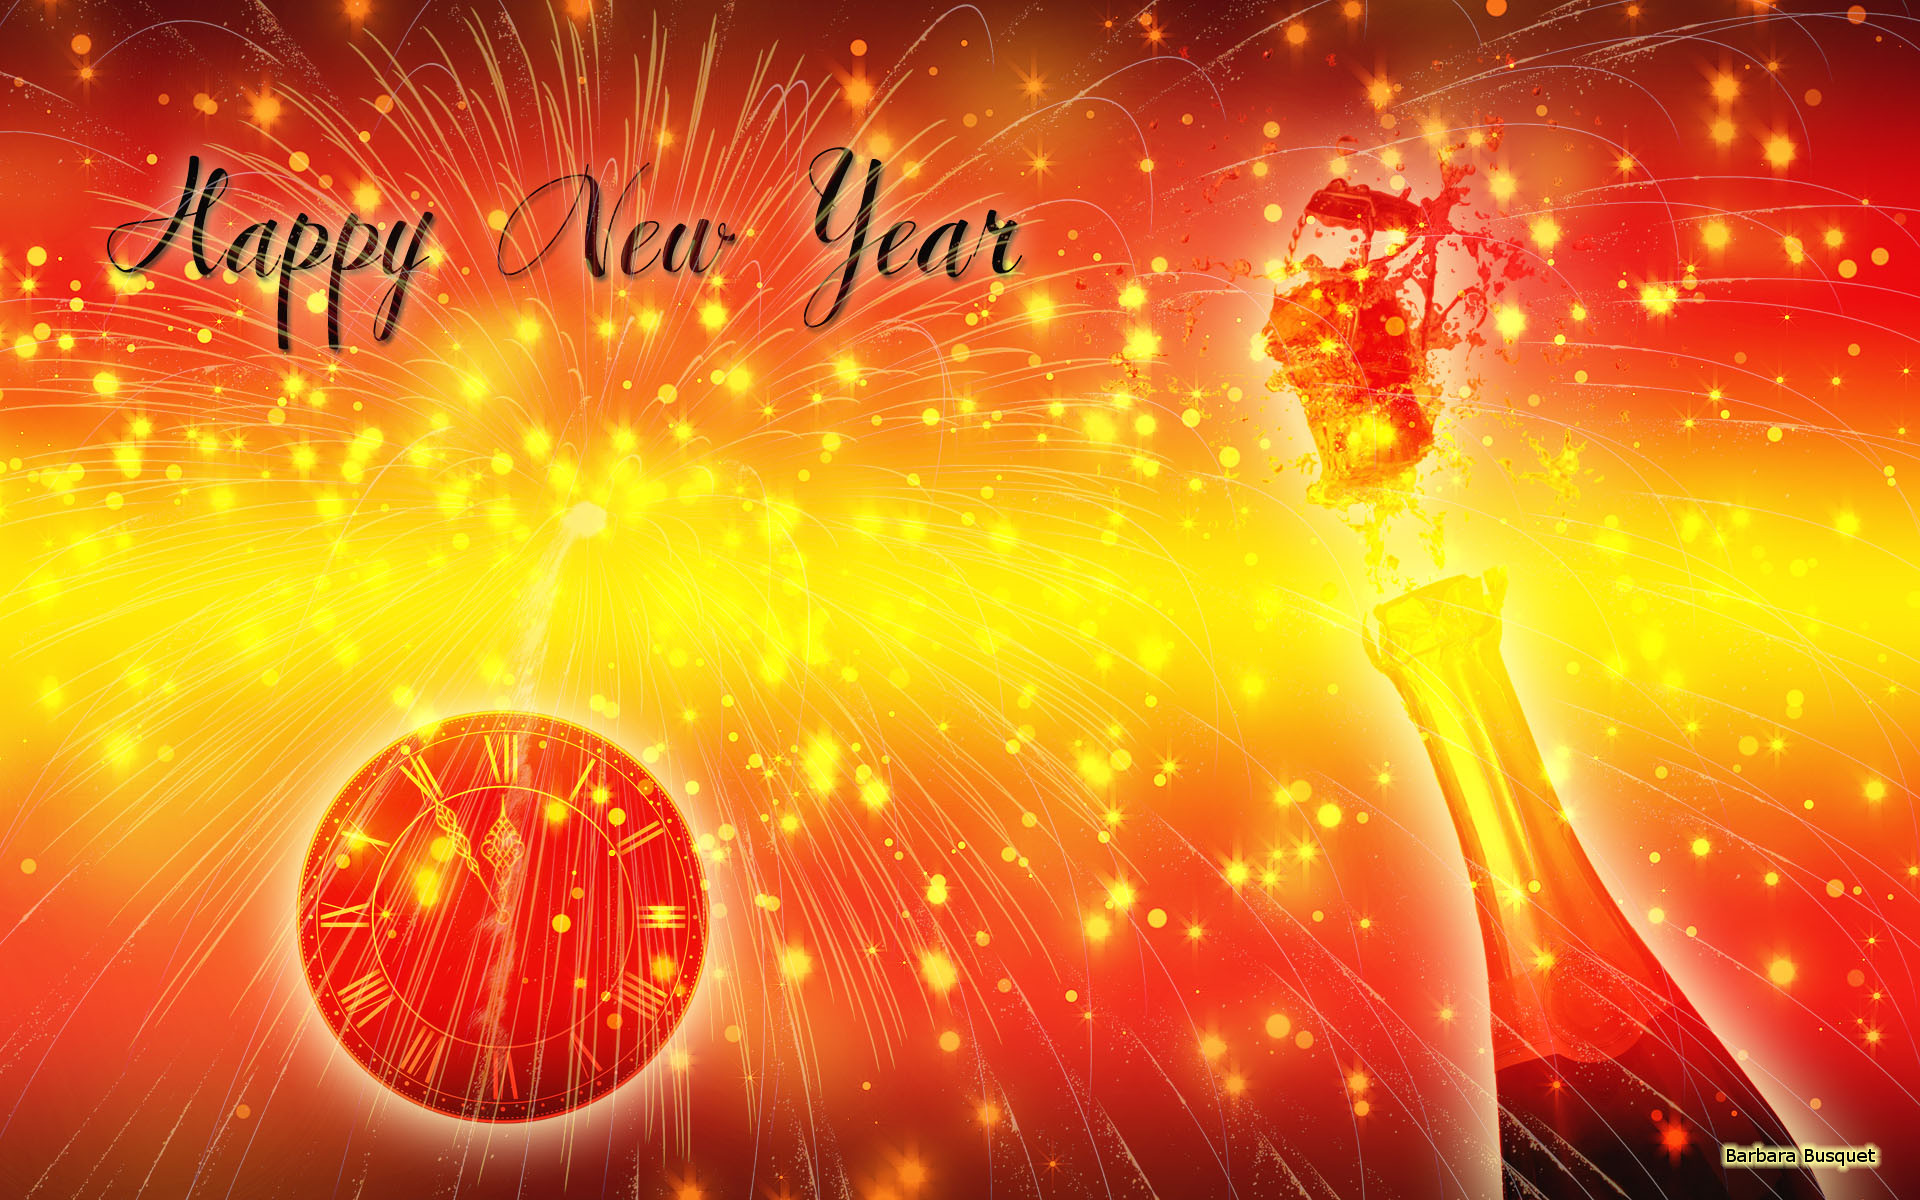 new years eve wallpaper in the colors red and yellow